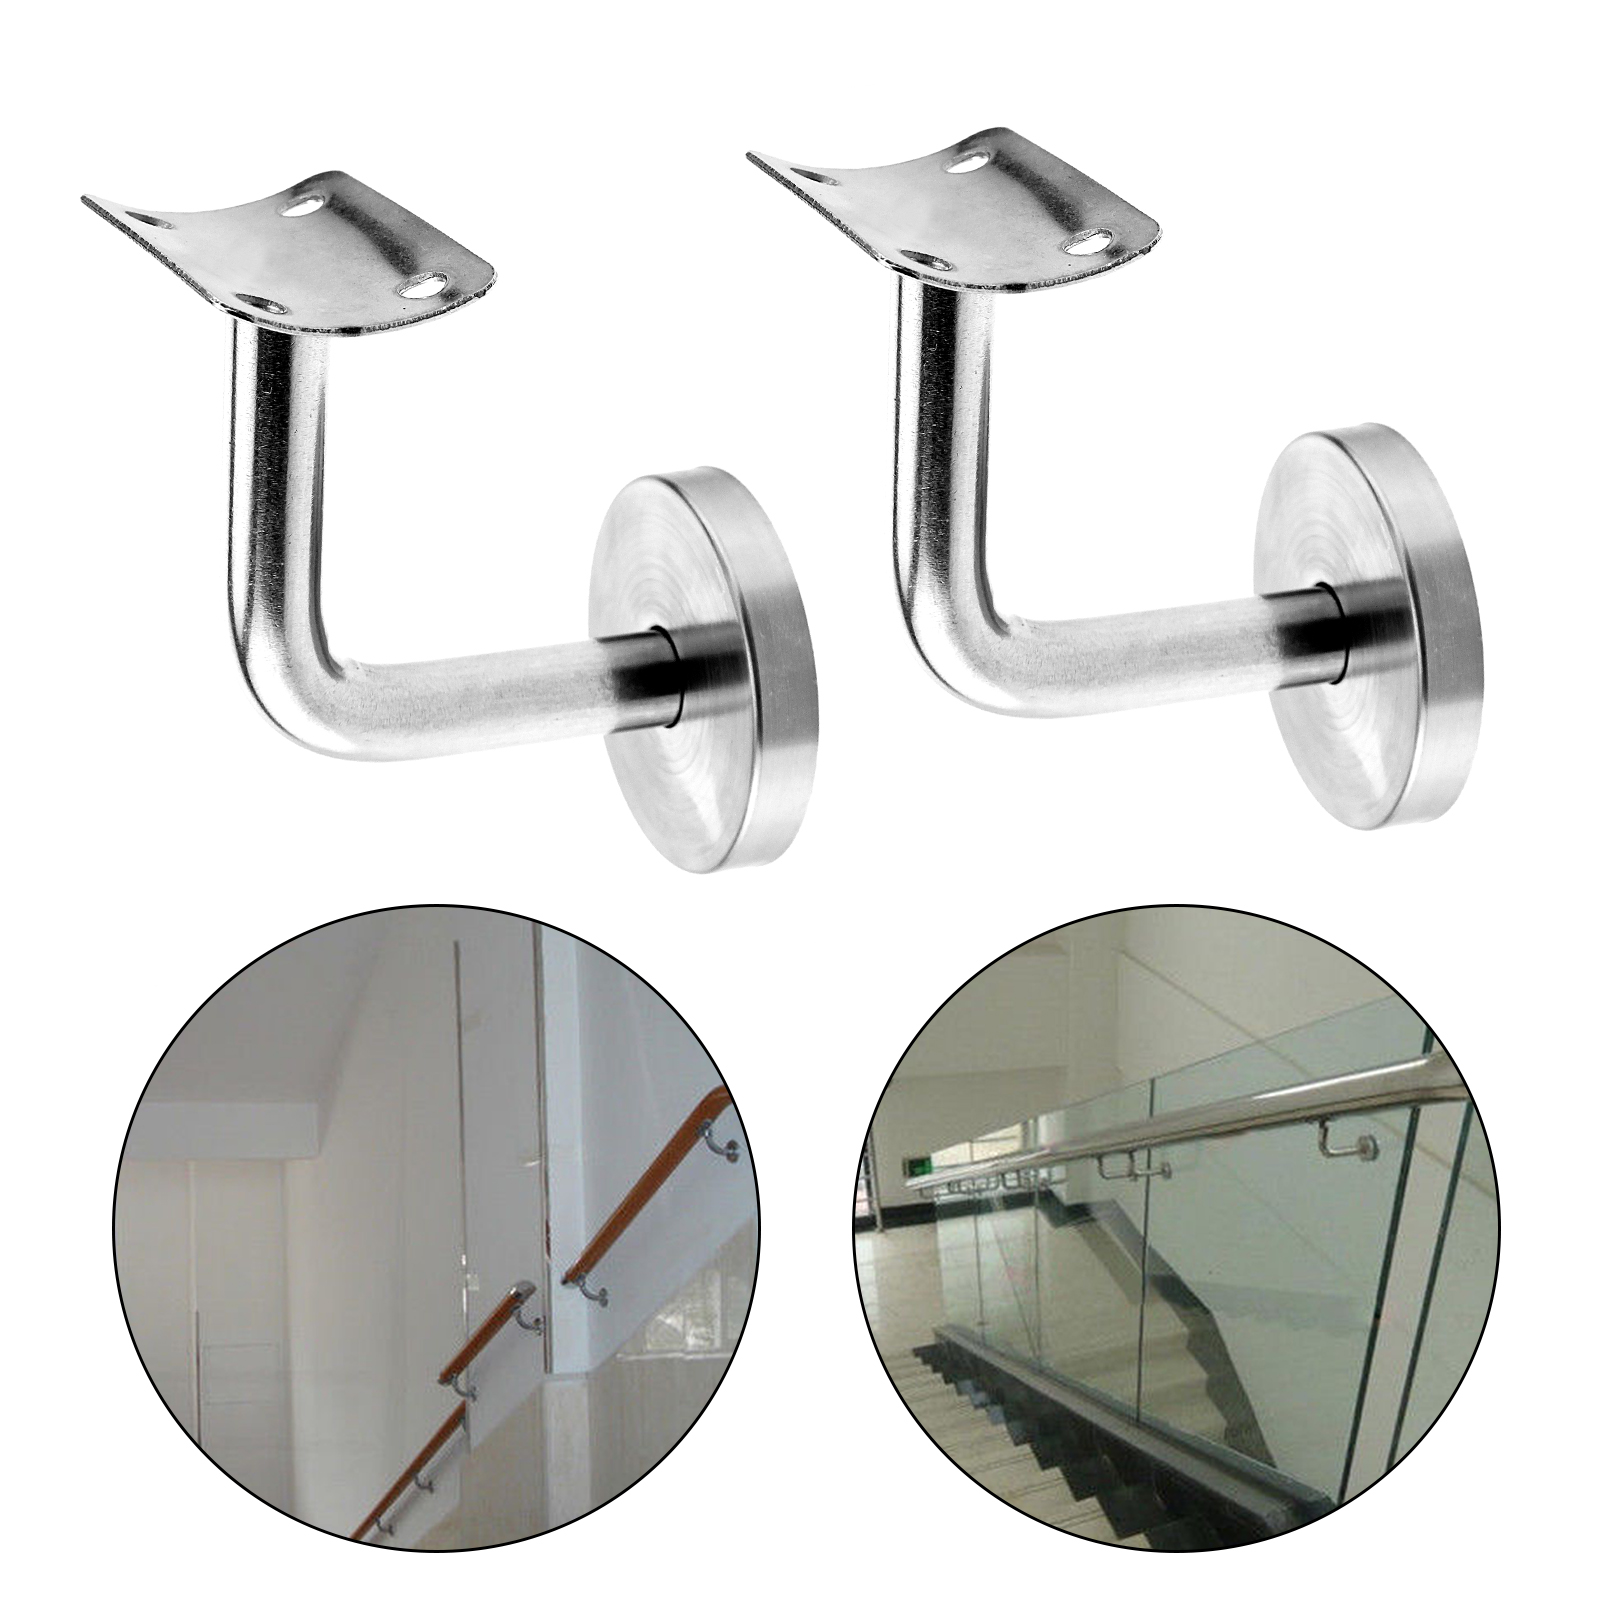 Superieur Details About Stair Handrail Guard Rail Mount Banister Support Wall Bracket  Stainless Steel